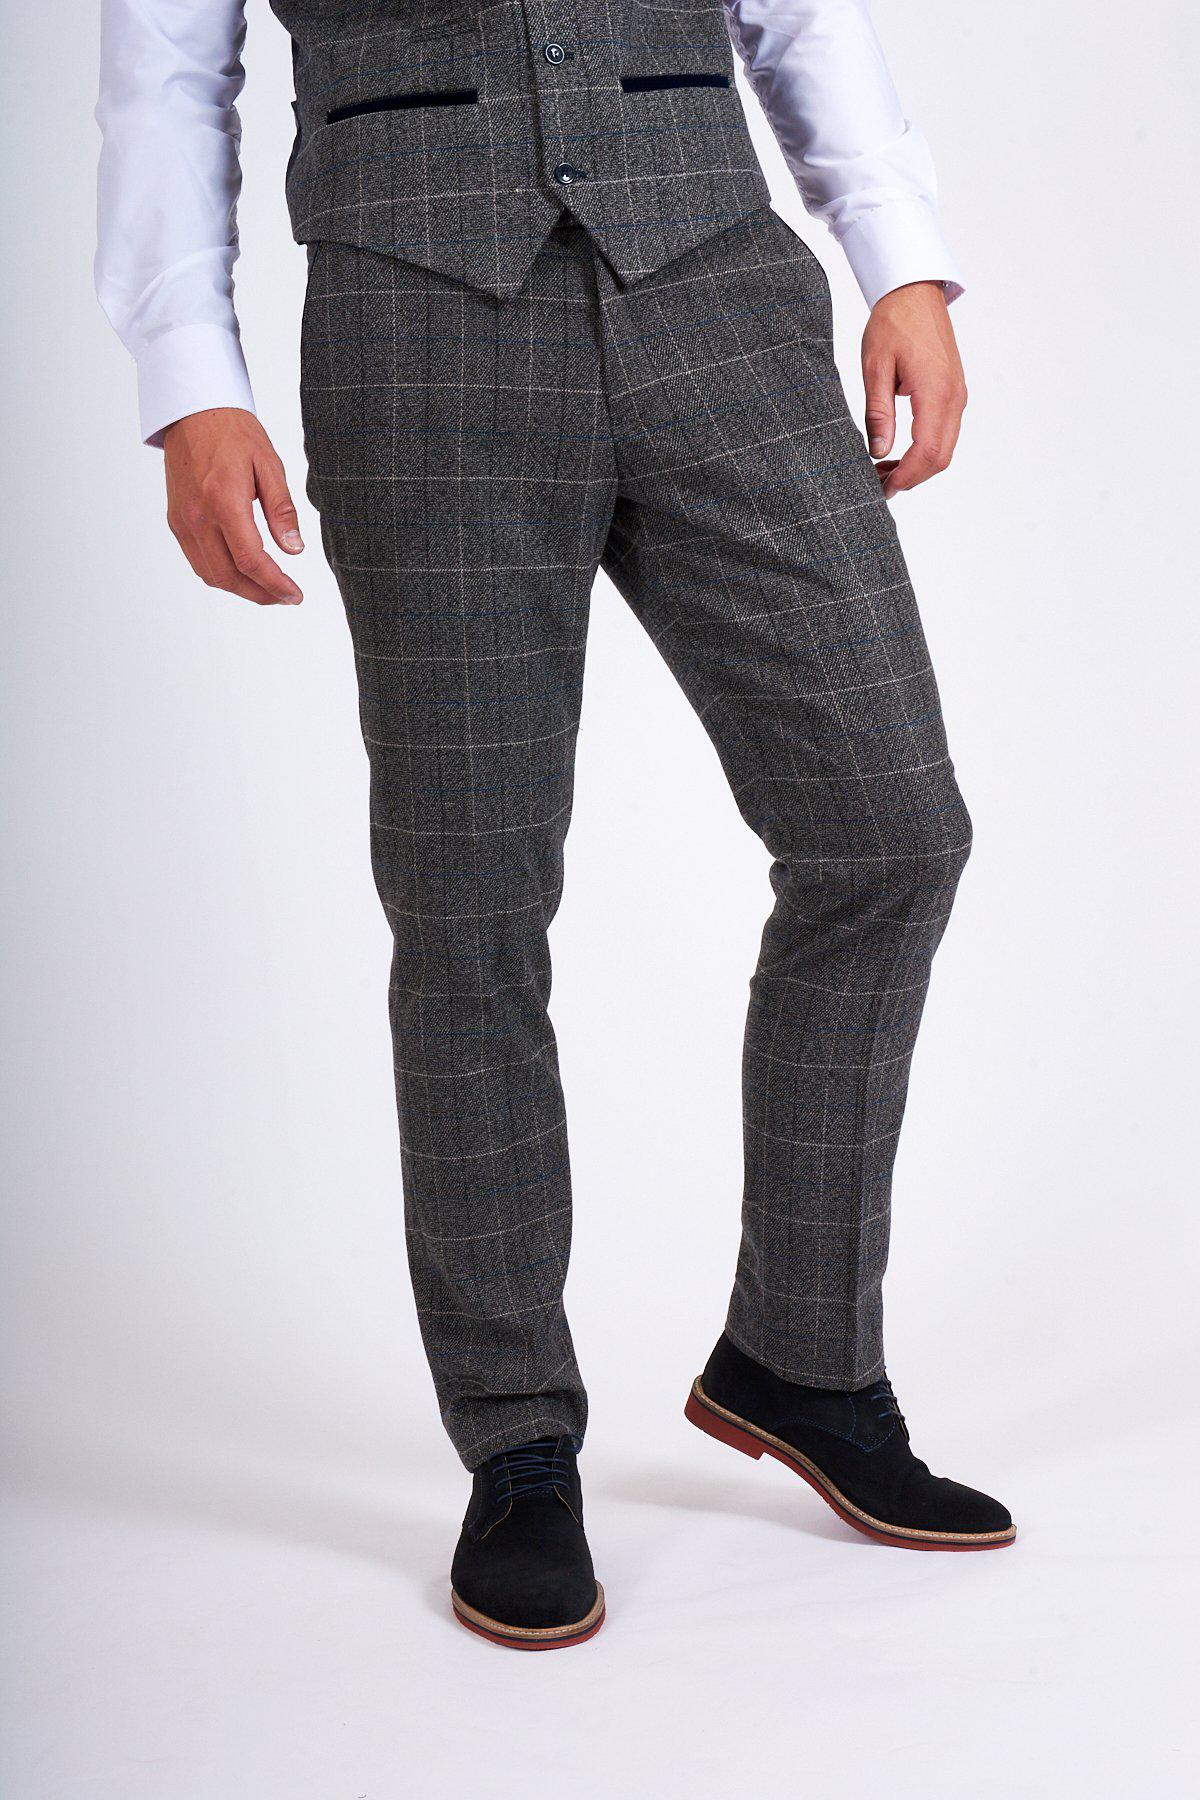 SCOTT - Grey Check Tweed Trousers - Marc Darcy dbd911e9f99d